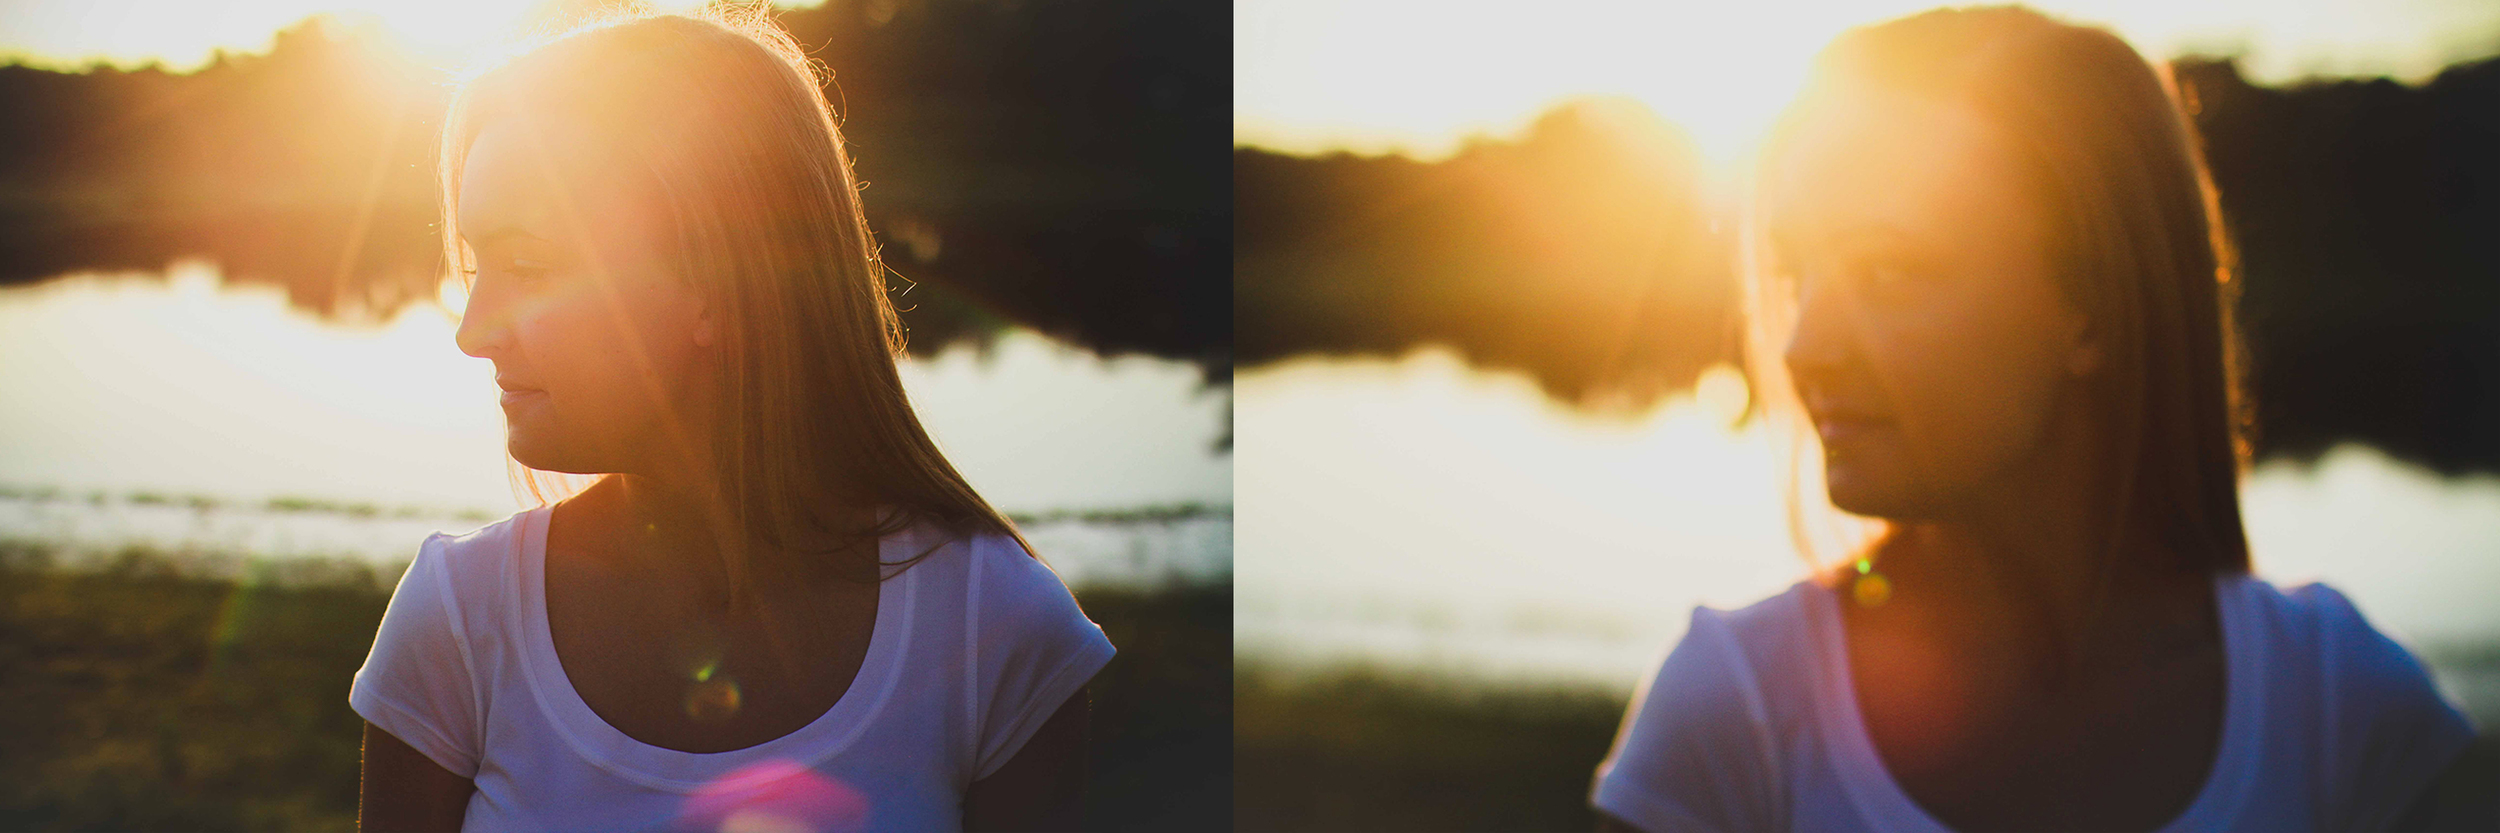 sunrise portraits.jpg